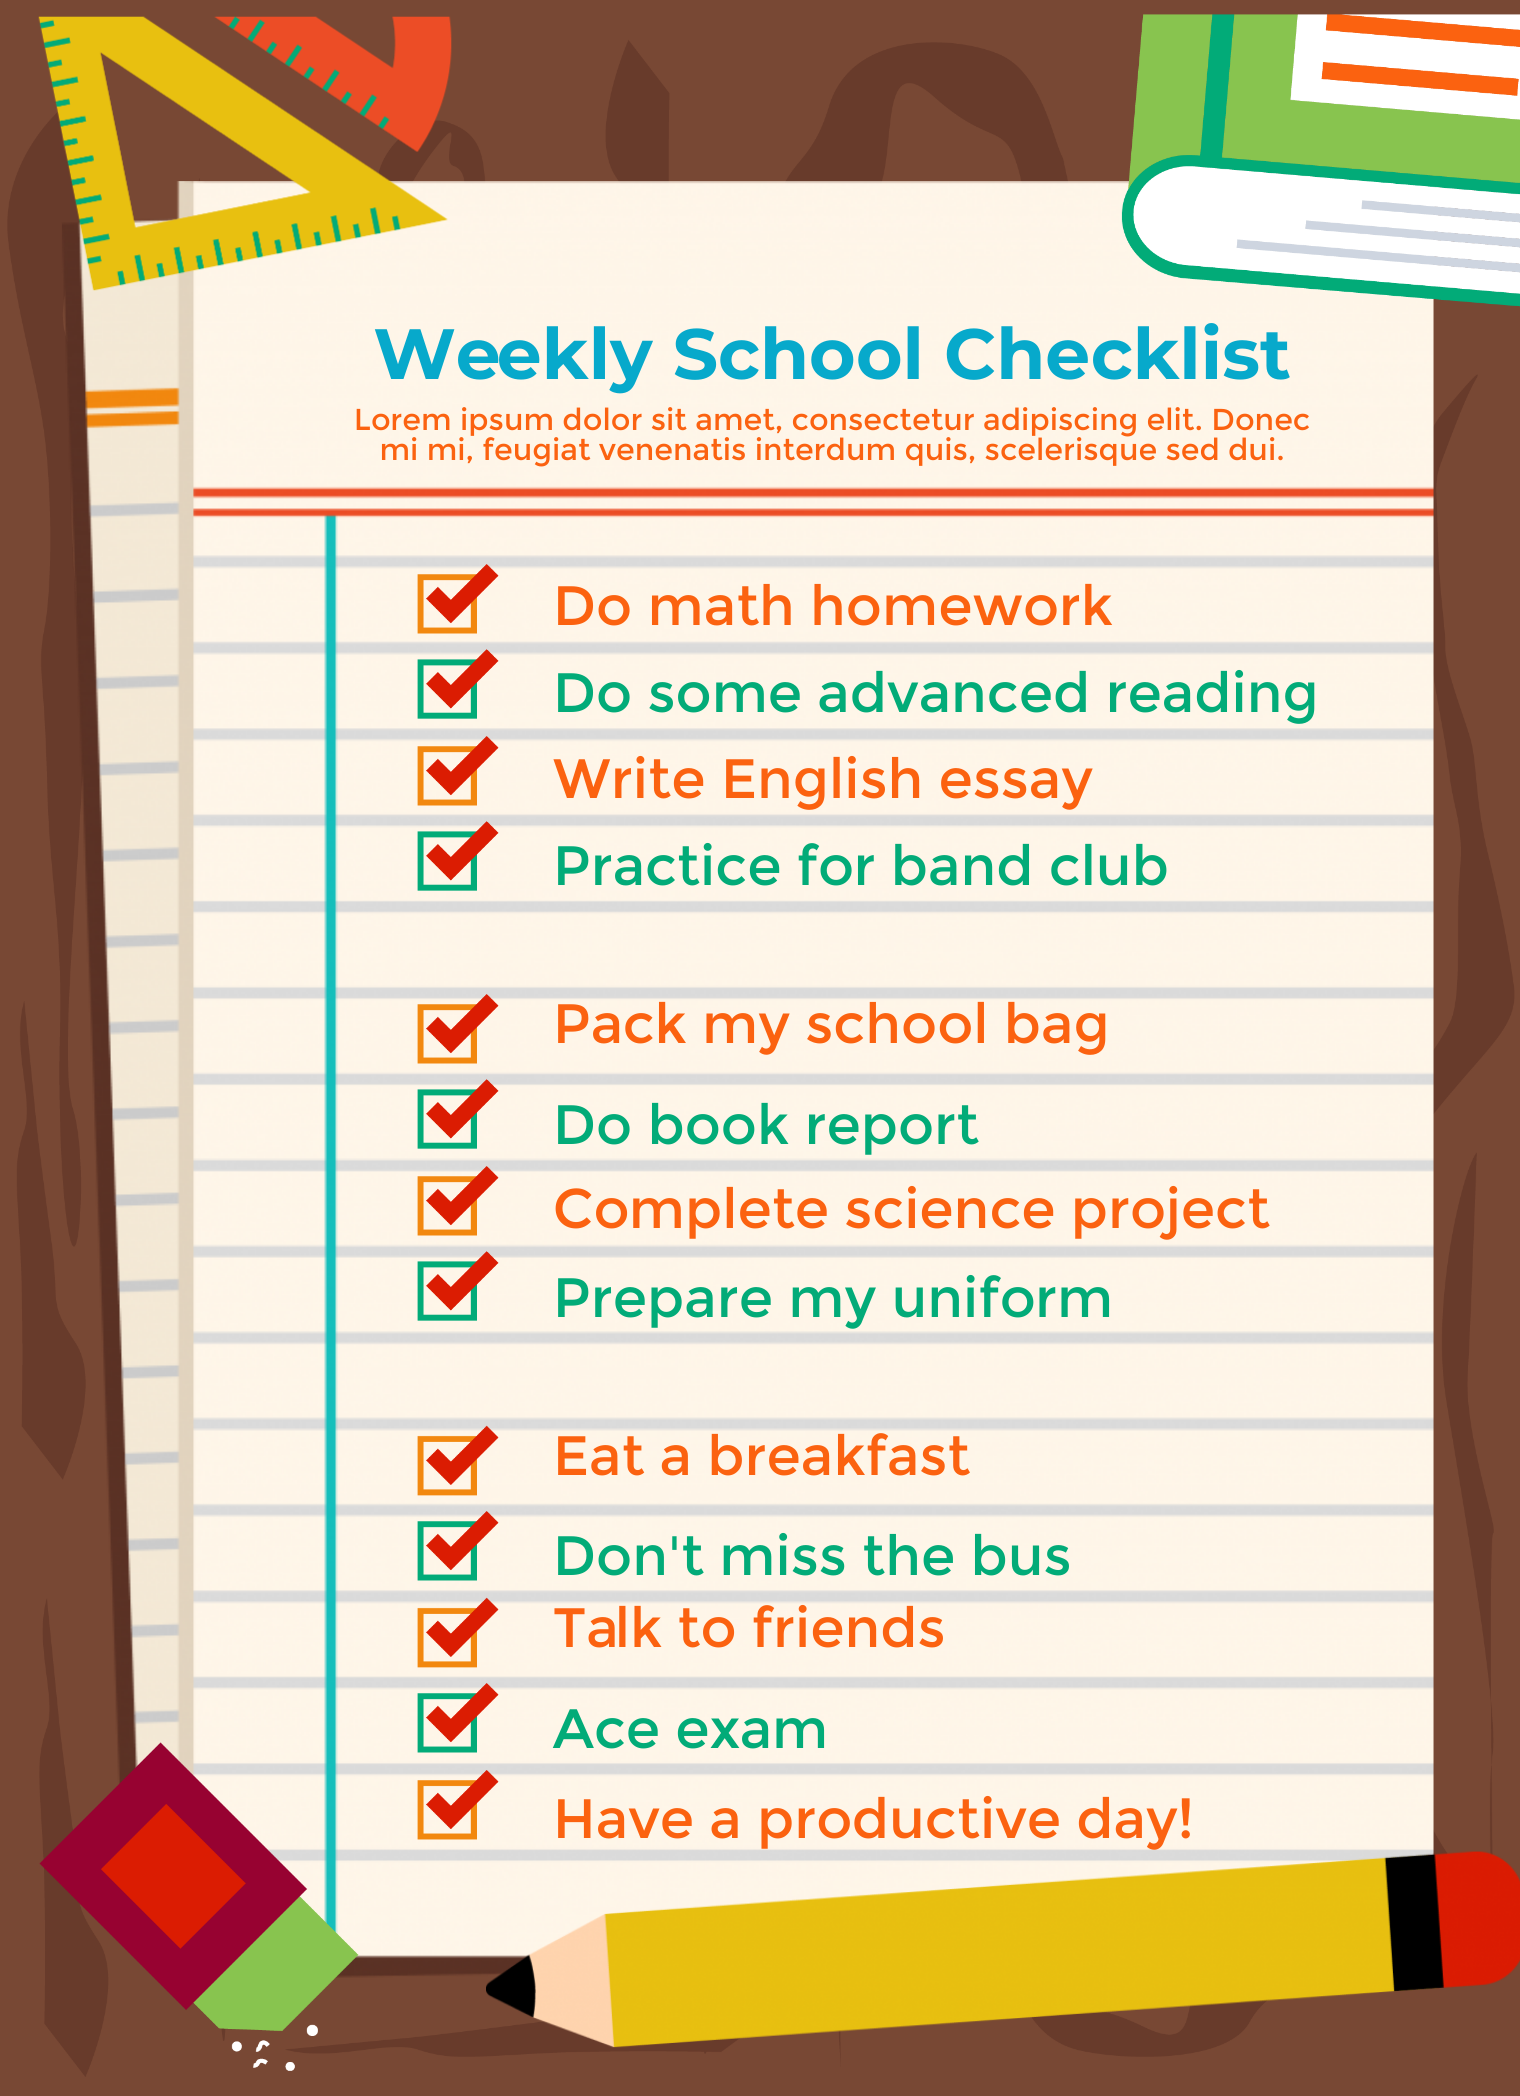 School checklist infographic template